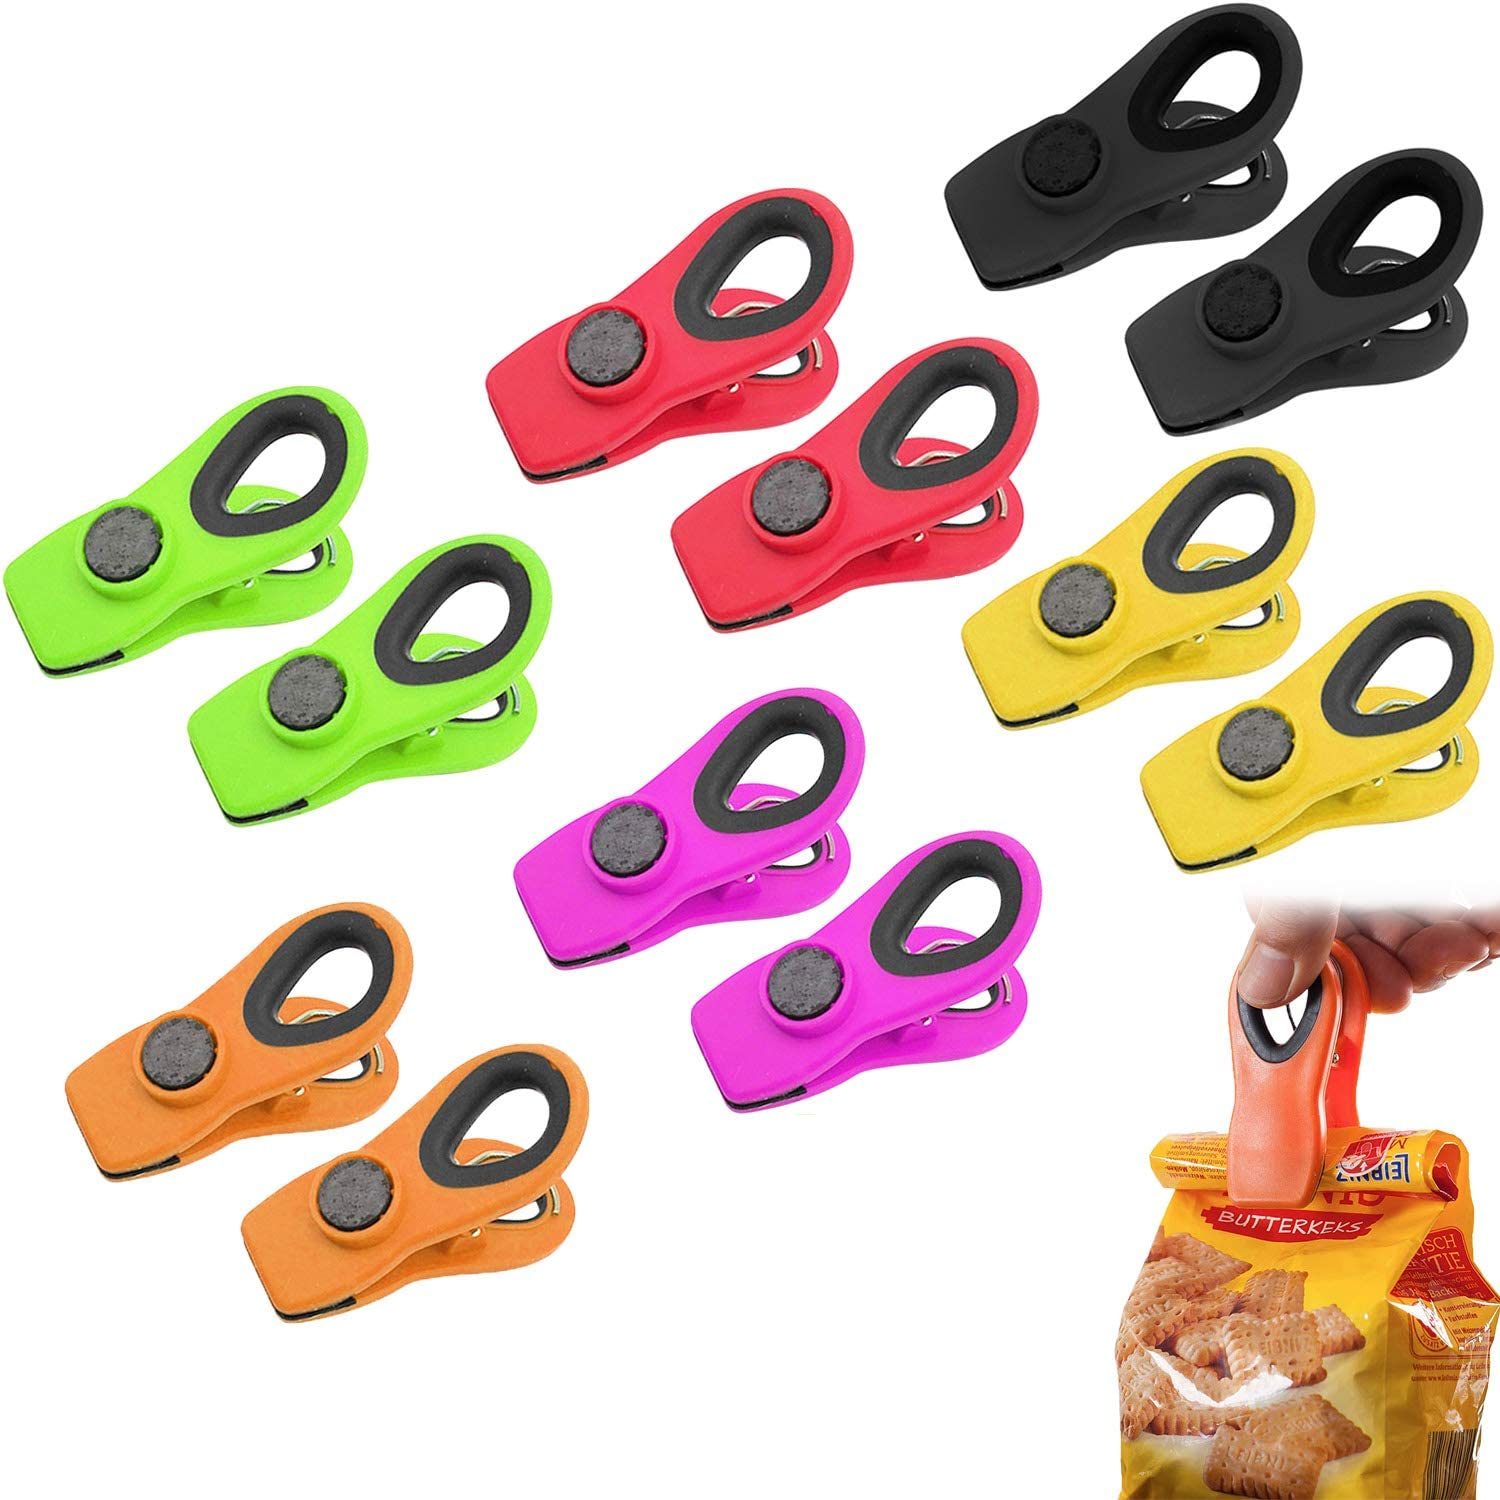 Clips for Food Packages, Bag Clips for Food Magnetic Clips for Refrigerator, Chip Clips Magnetic Multicolored Food Sealing Clips with Airtight Seal for Home Kitchen Office School Supplies(12 PCS)